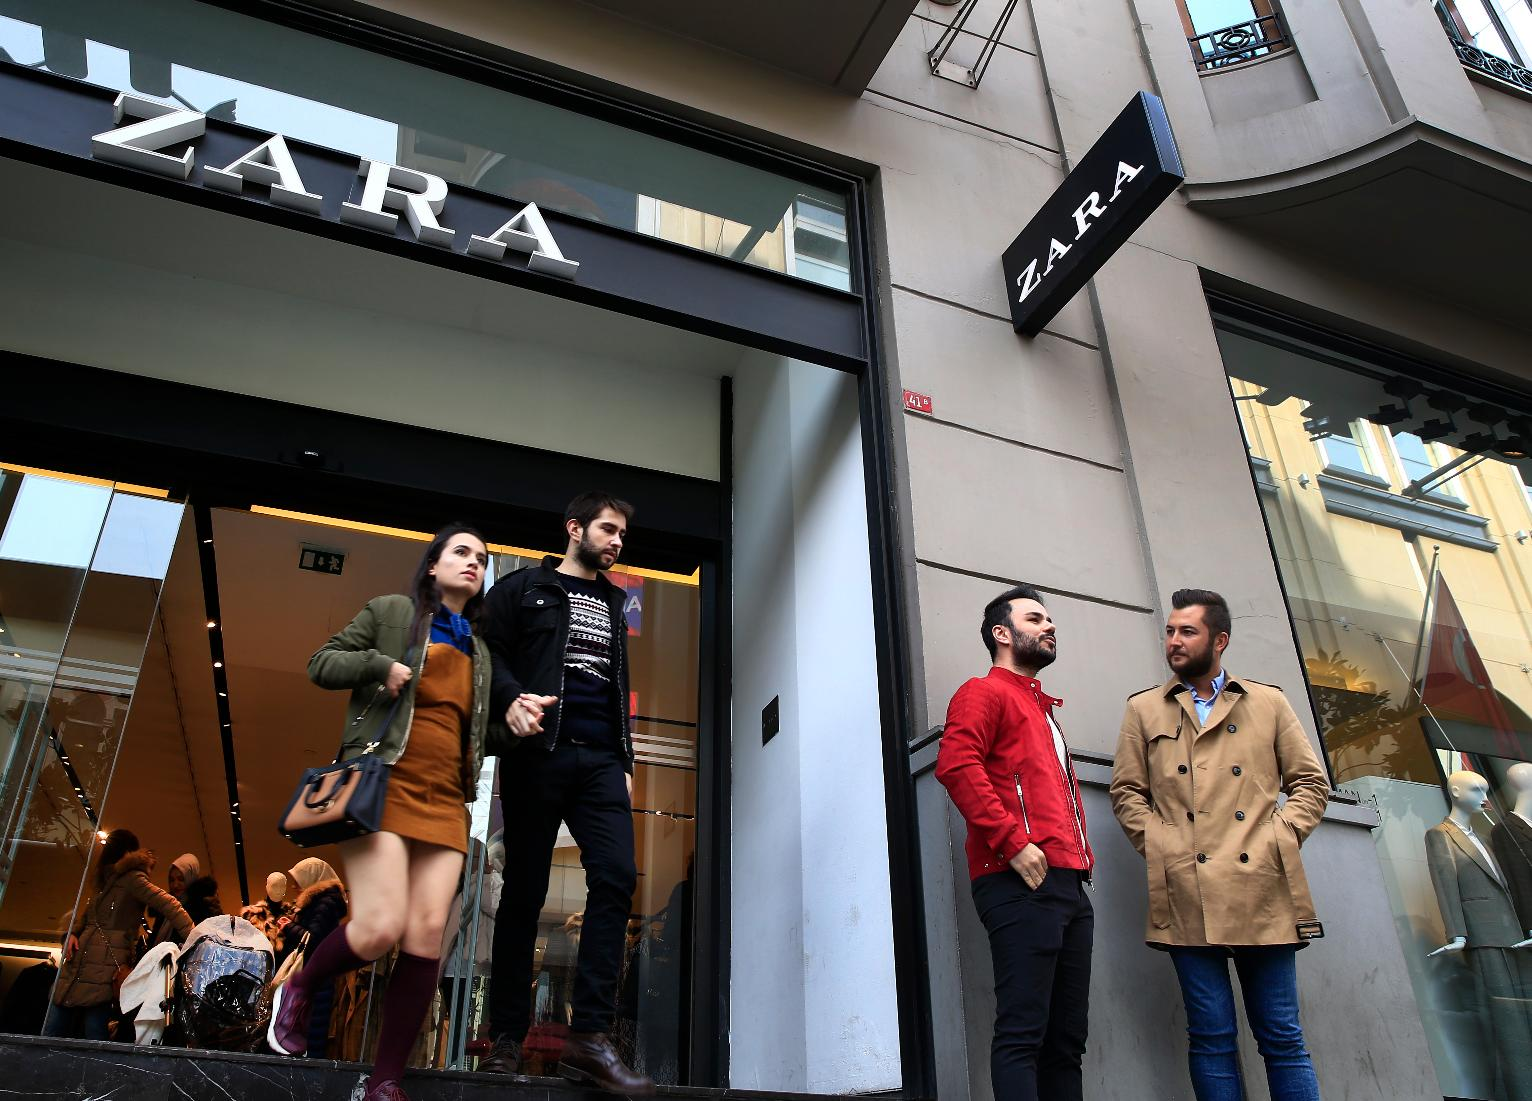 Zara is one of the companies targeted by Chinese netizens